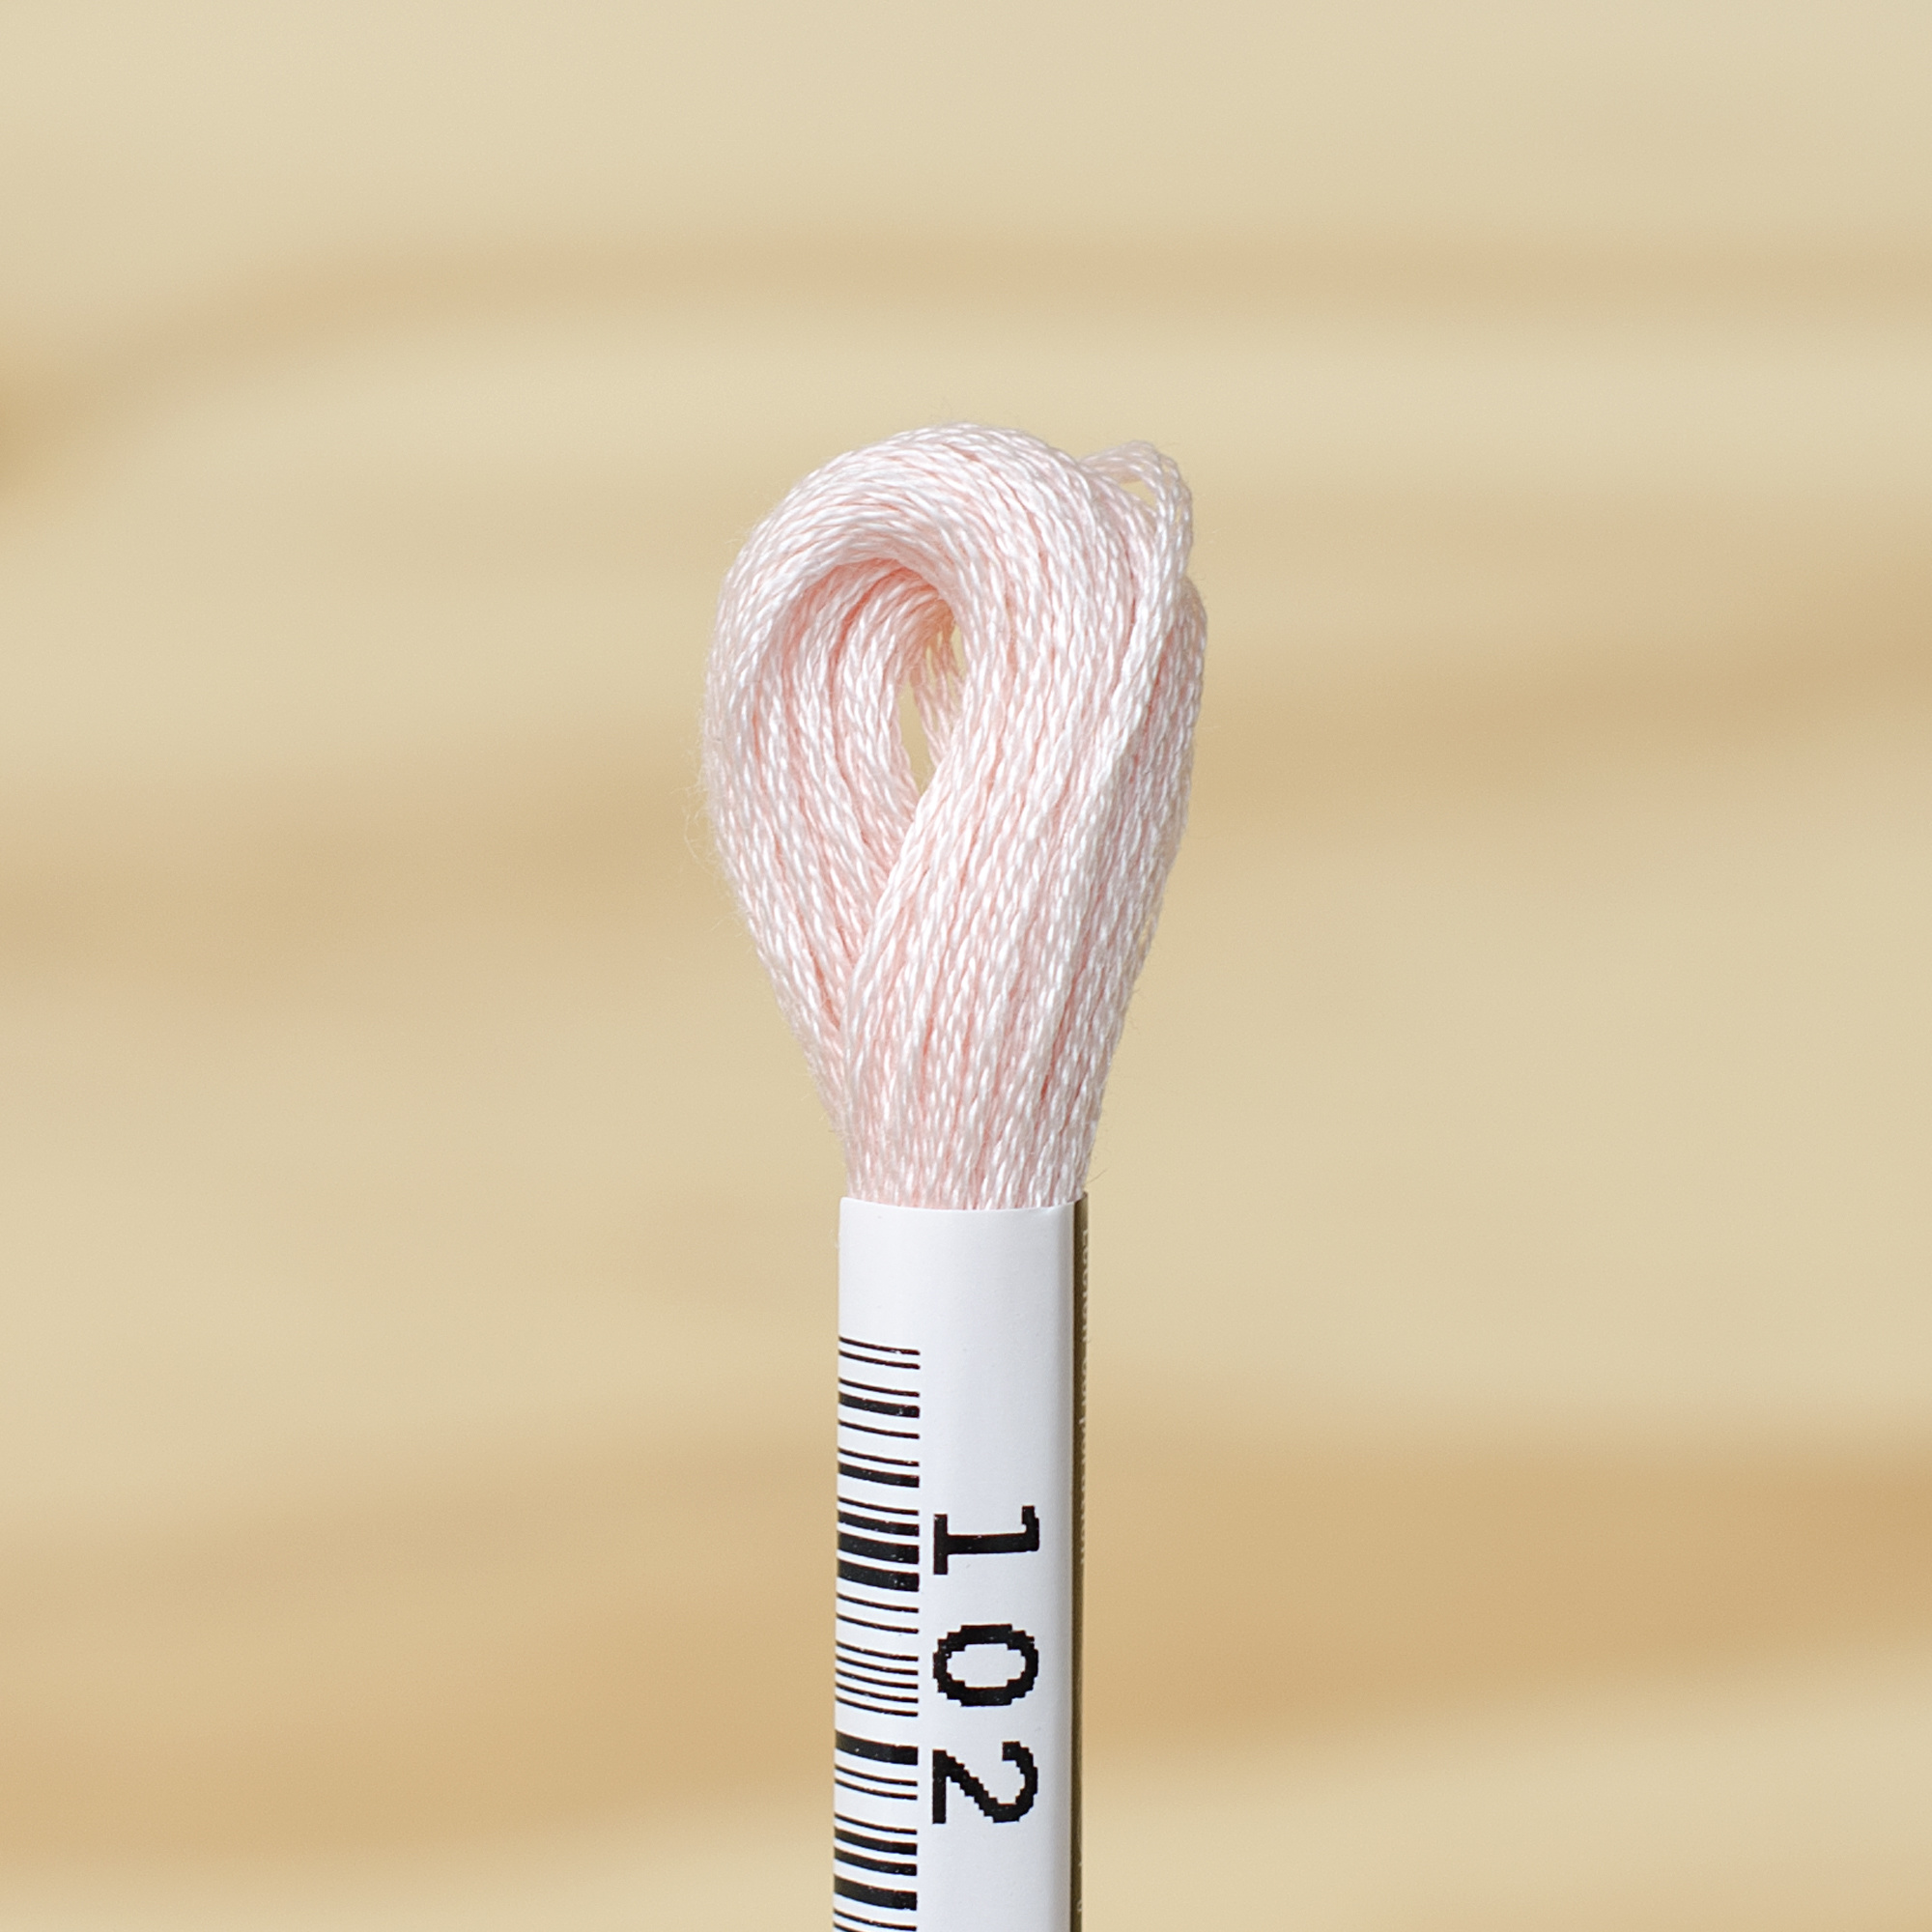 Cosmo Cotton Embroidery Floss : 8m skein : 102